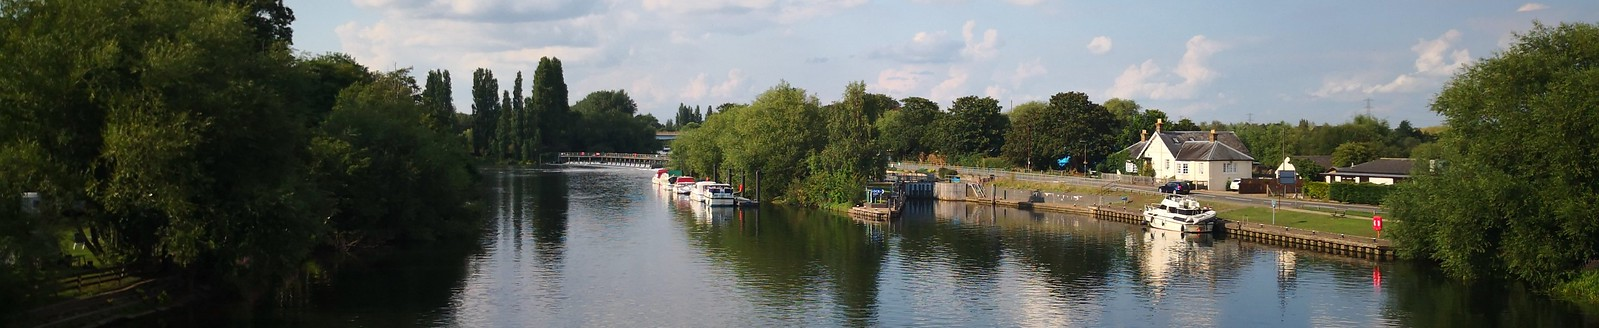 Banner image for Day 12 - Devizes to Chertsey